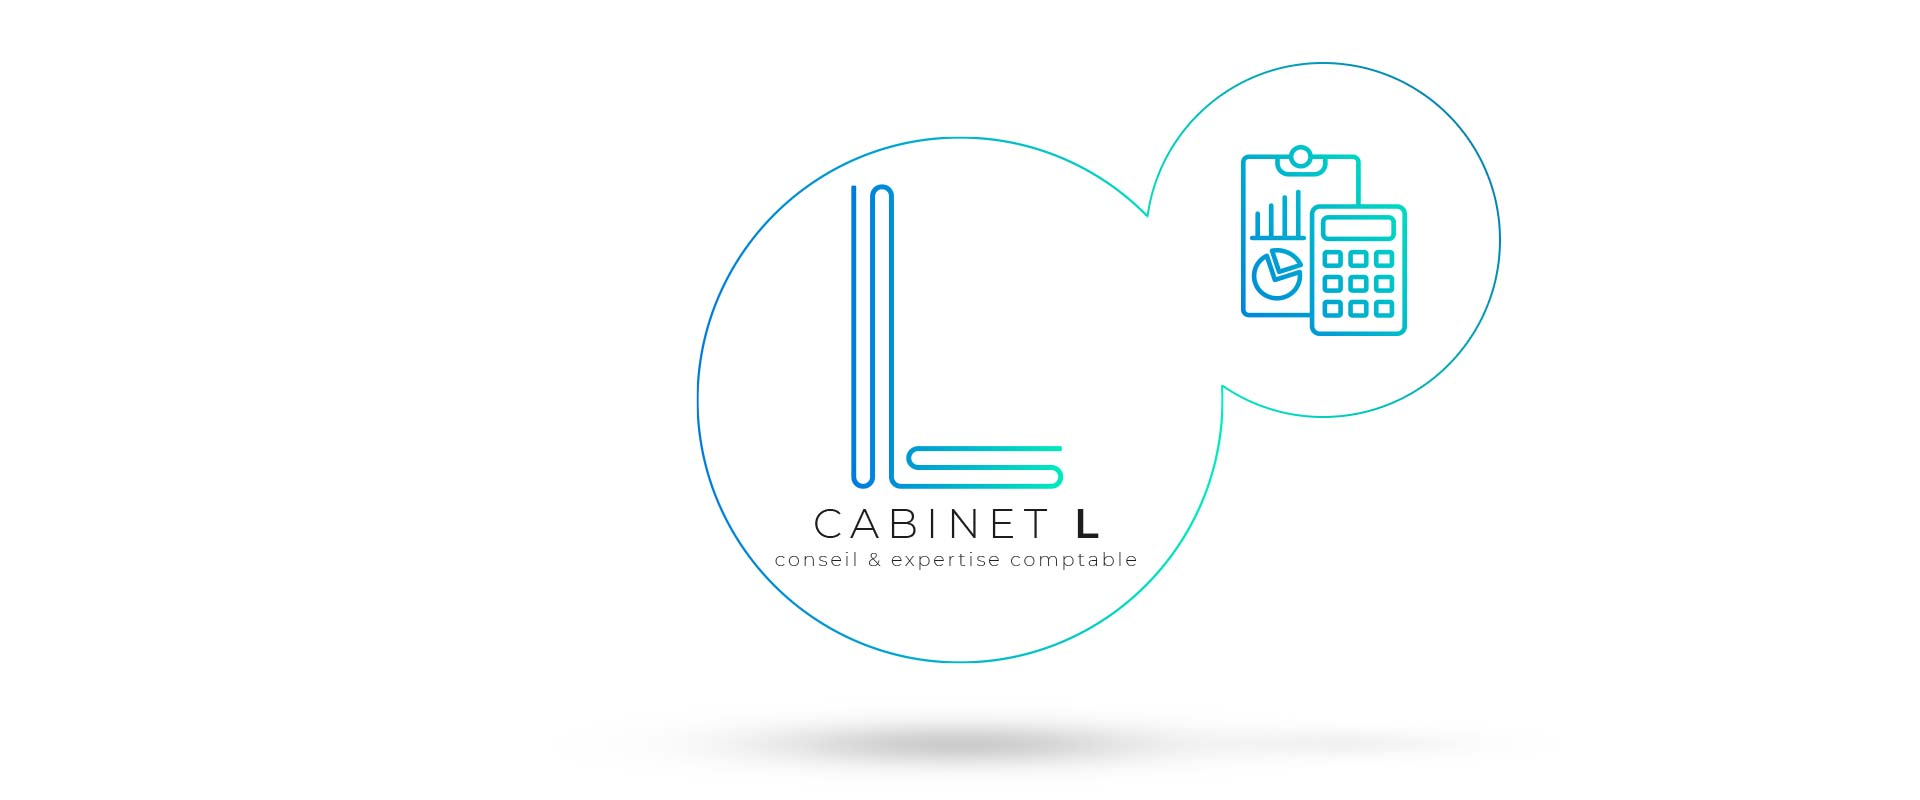 cabinet L expert comptable